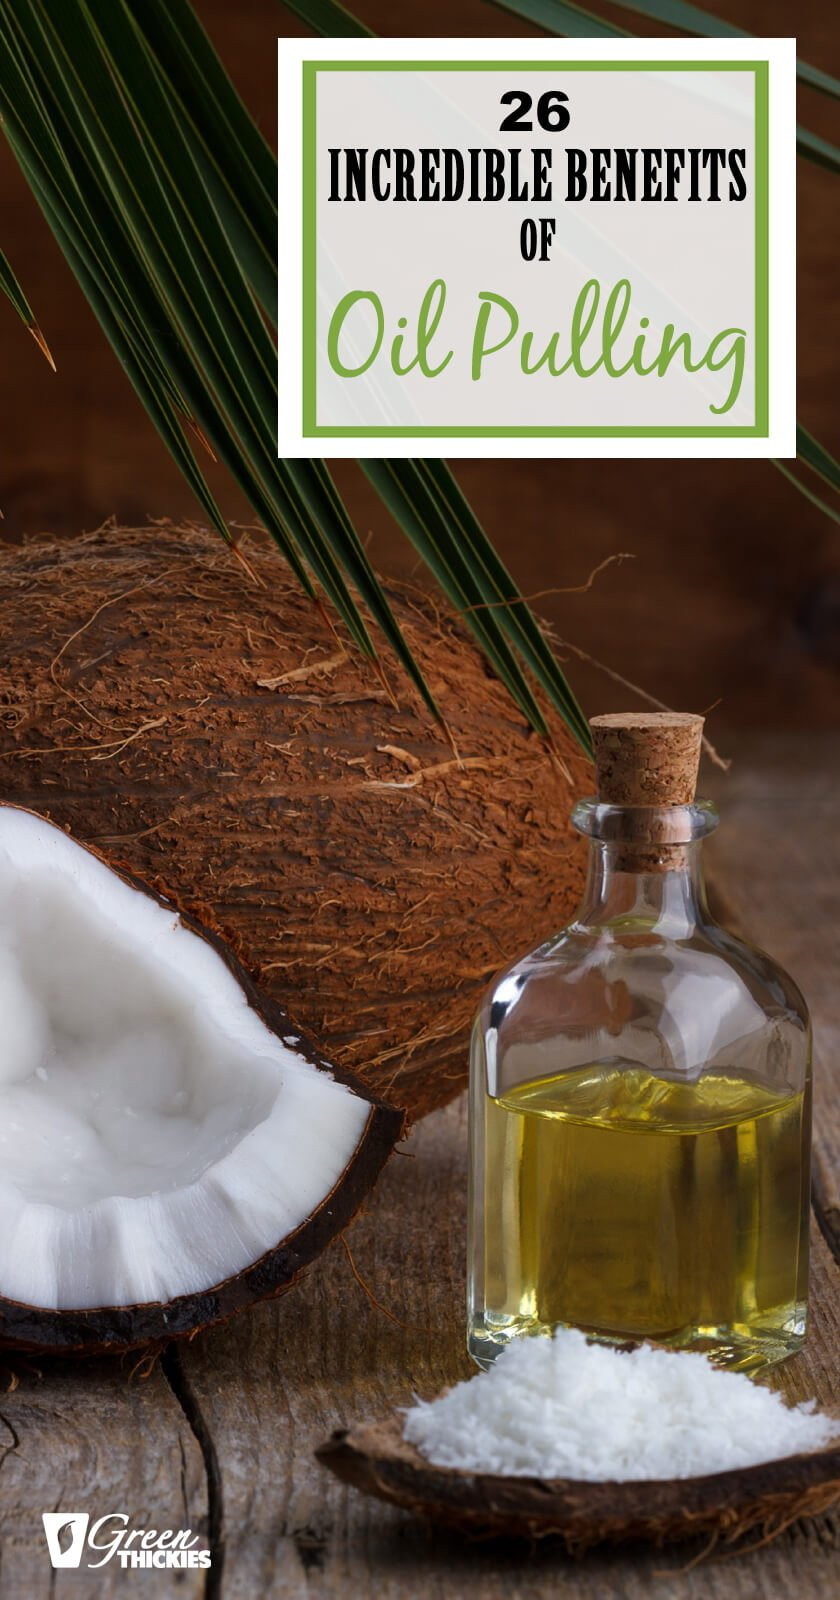 Oil pulling is basically swishing oils around your mouth like mouthwash. Would you believe there are actually 26 incredible benefits of oil pulling?Click the pin to find out why you need to add this to your morning routine!#greenthickies #oilpulling #oilpullingbenefits #curecavities #morningroutine #whiterteeth #naturaldentalhealth #toothdecay #cavities #homeremedies #homeremedy #reversecavities